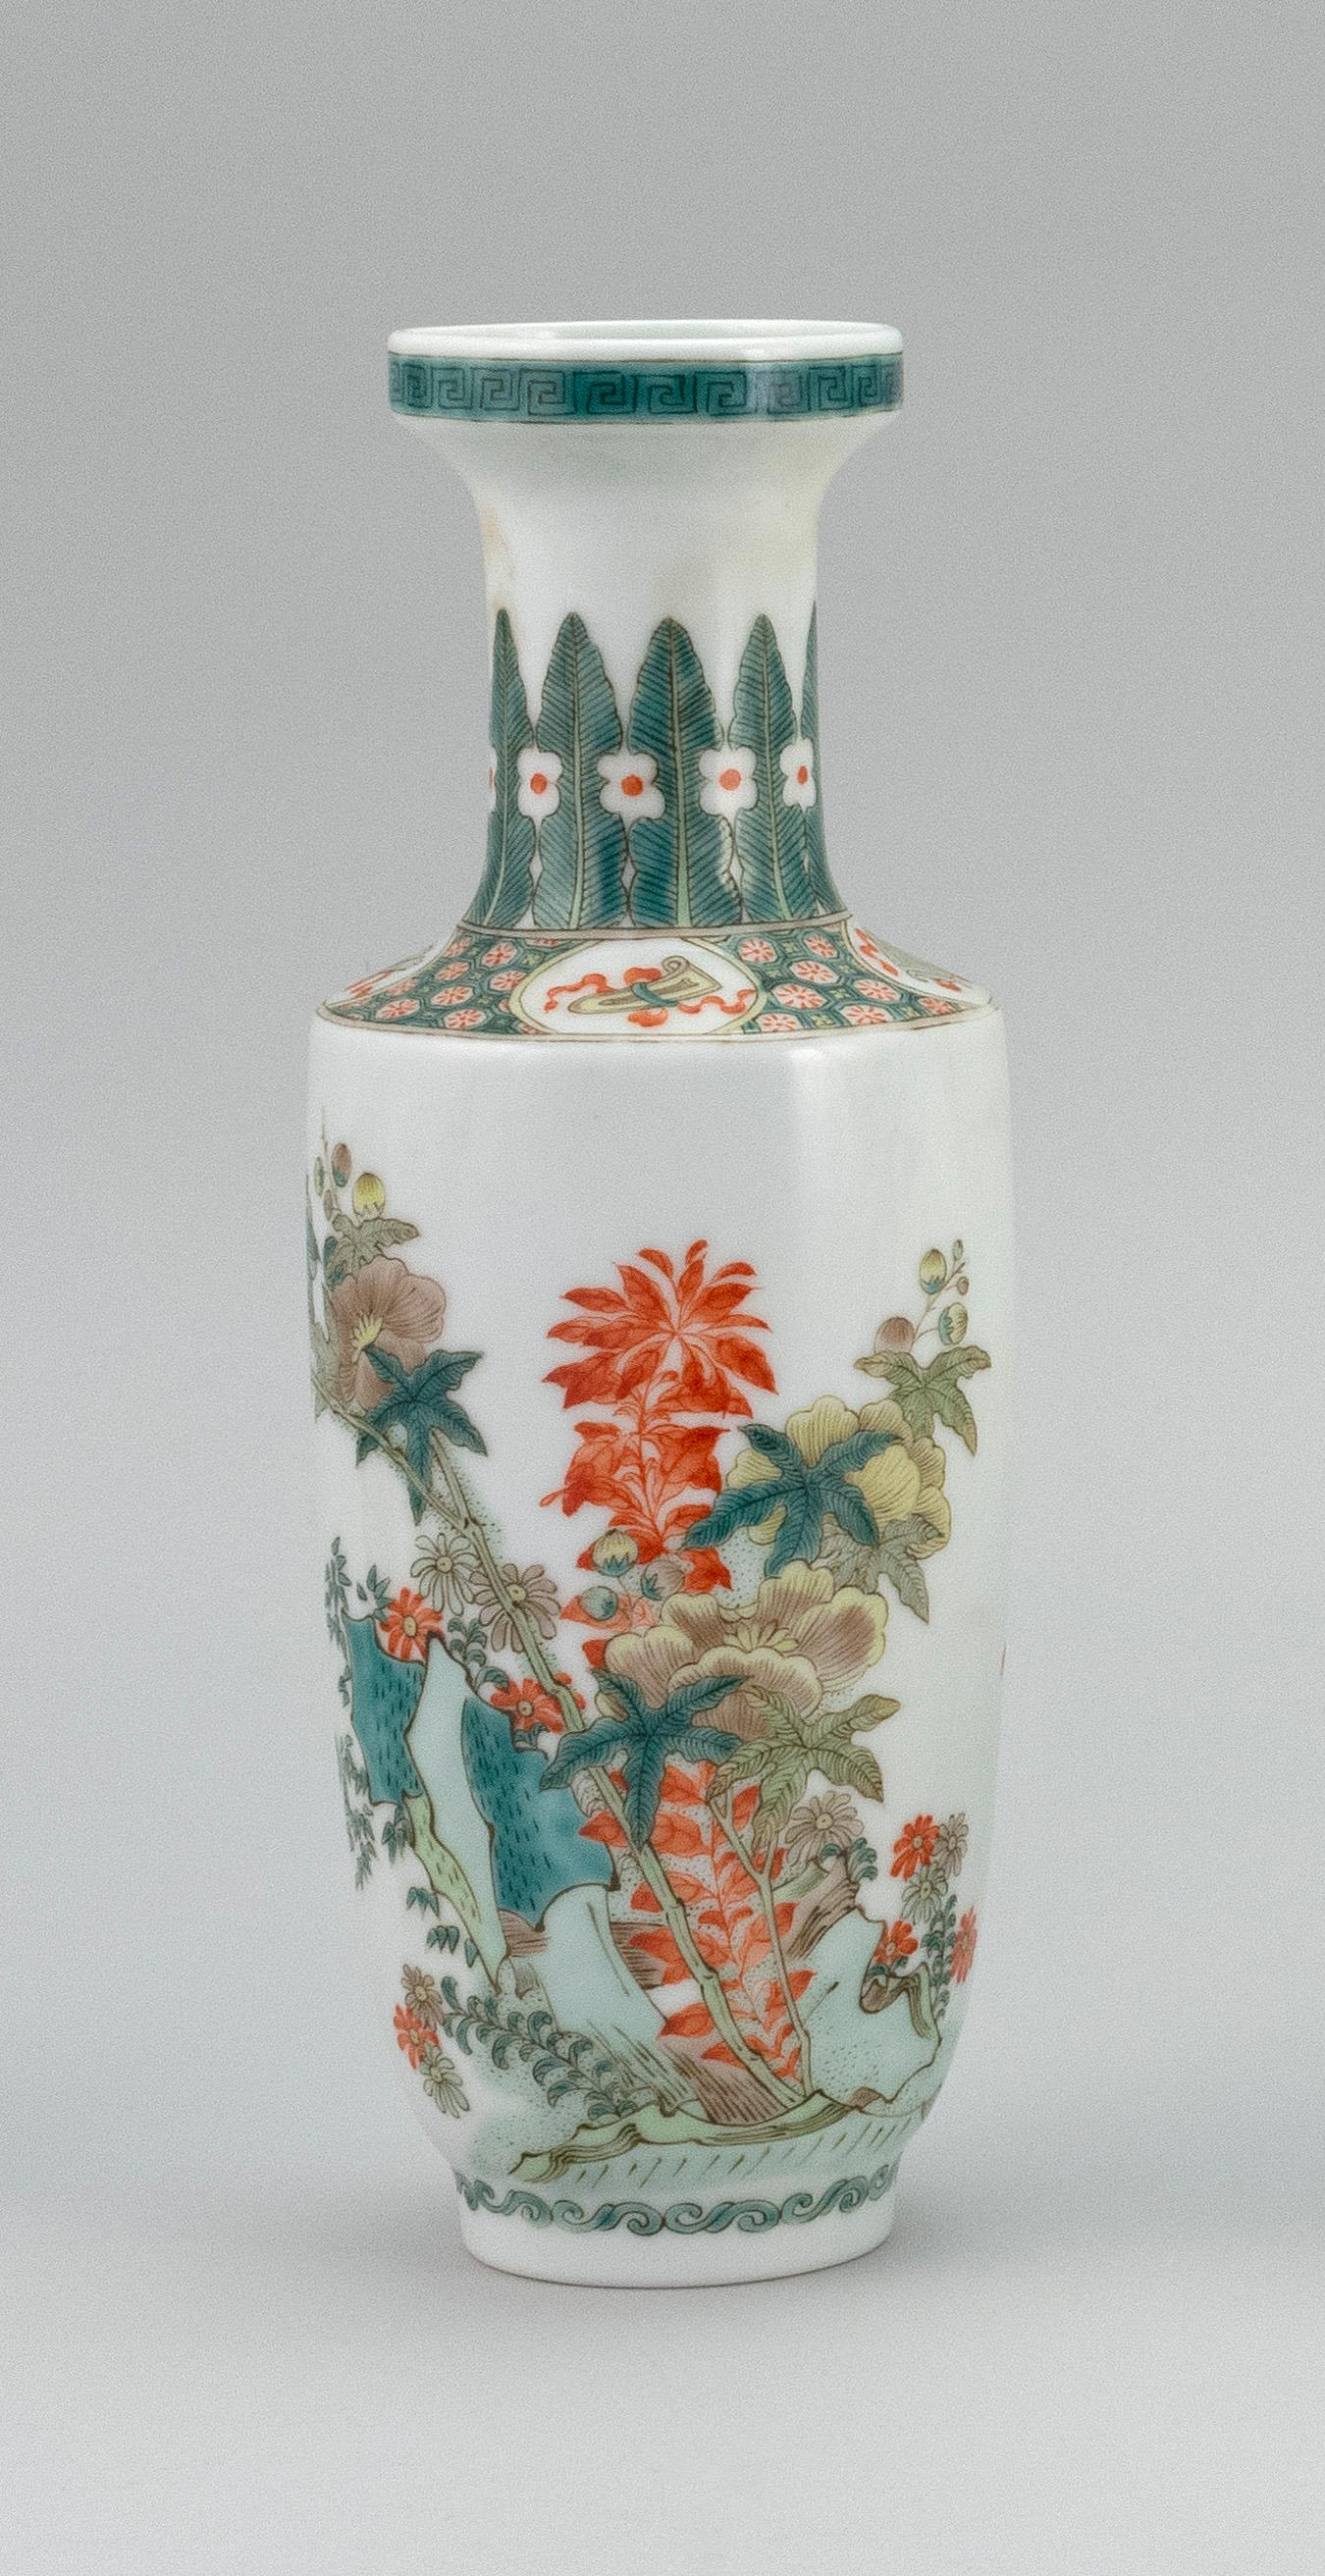 CHINESE FAMILLE VERTE PORCELAIN VASE In rouleau form, with finely detailed decoration of butterflies in a flowering landscape. Six-c...